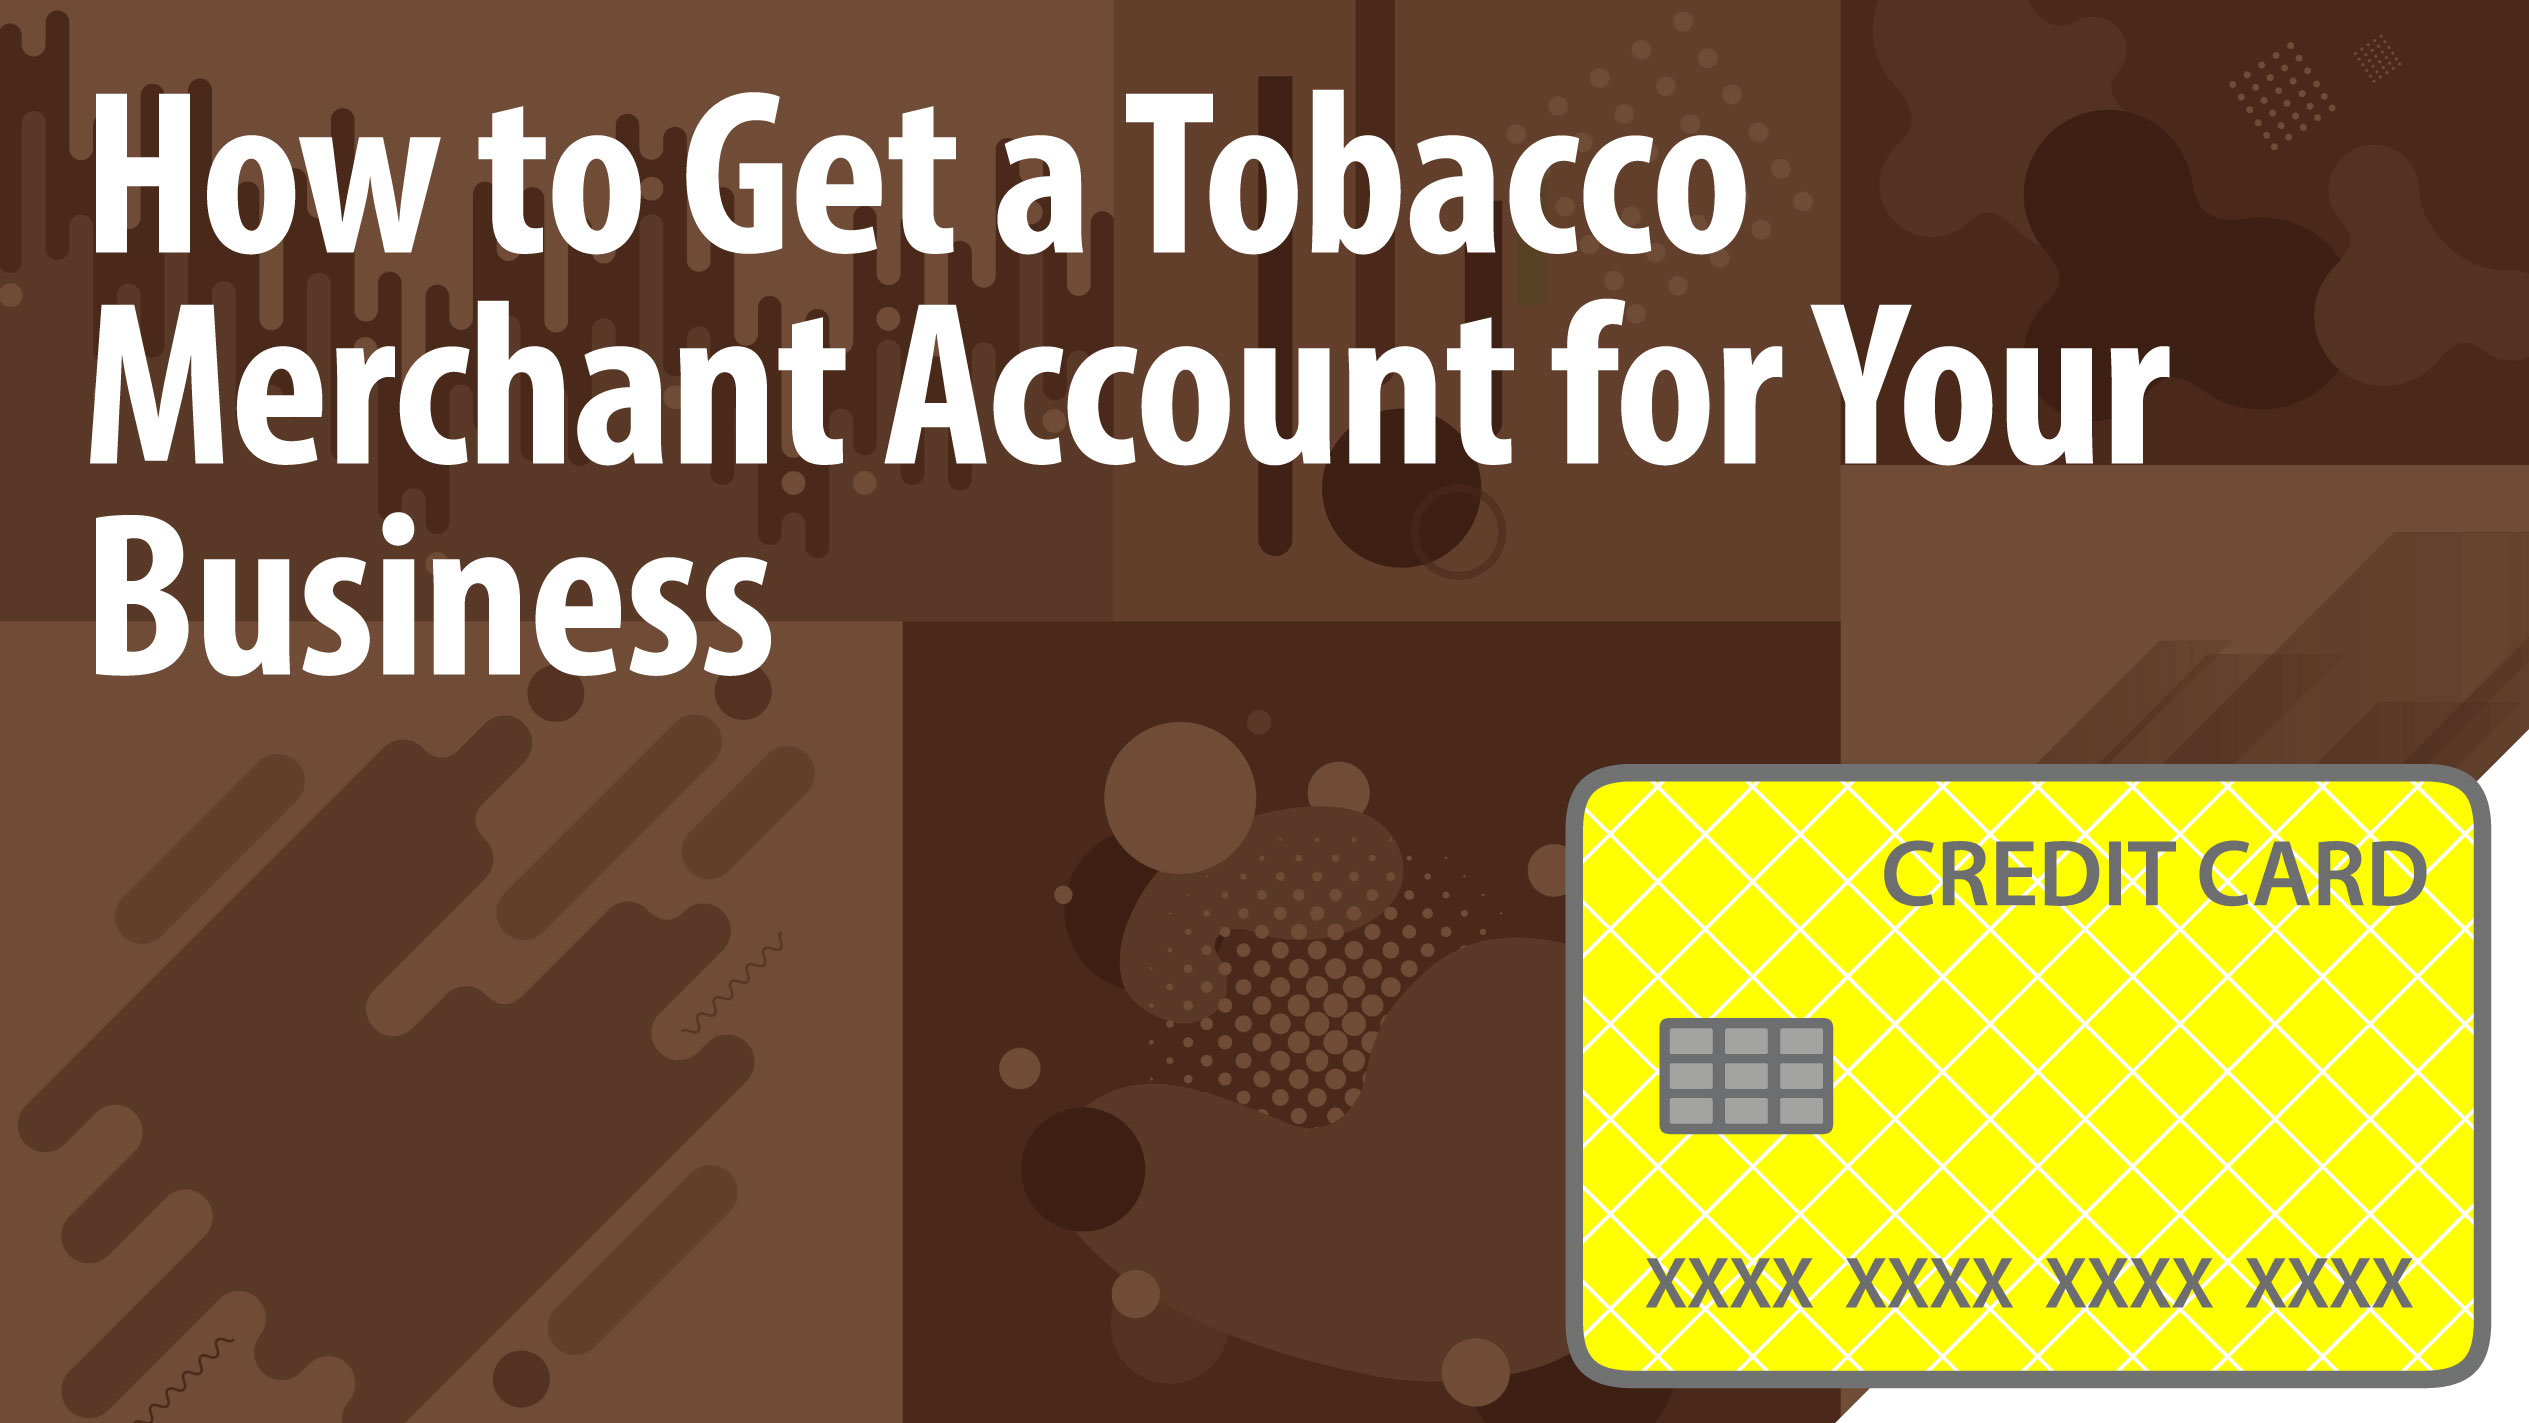 How to Get a Tobacco Merchant Account for Your Business